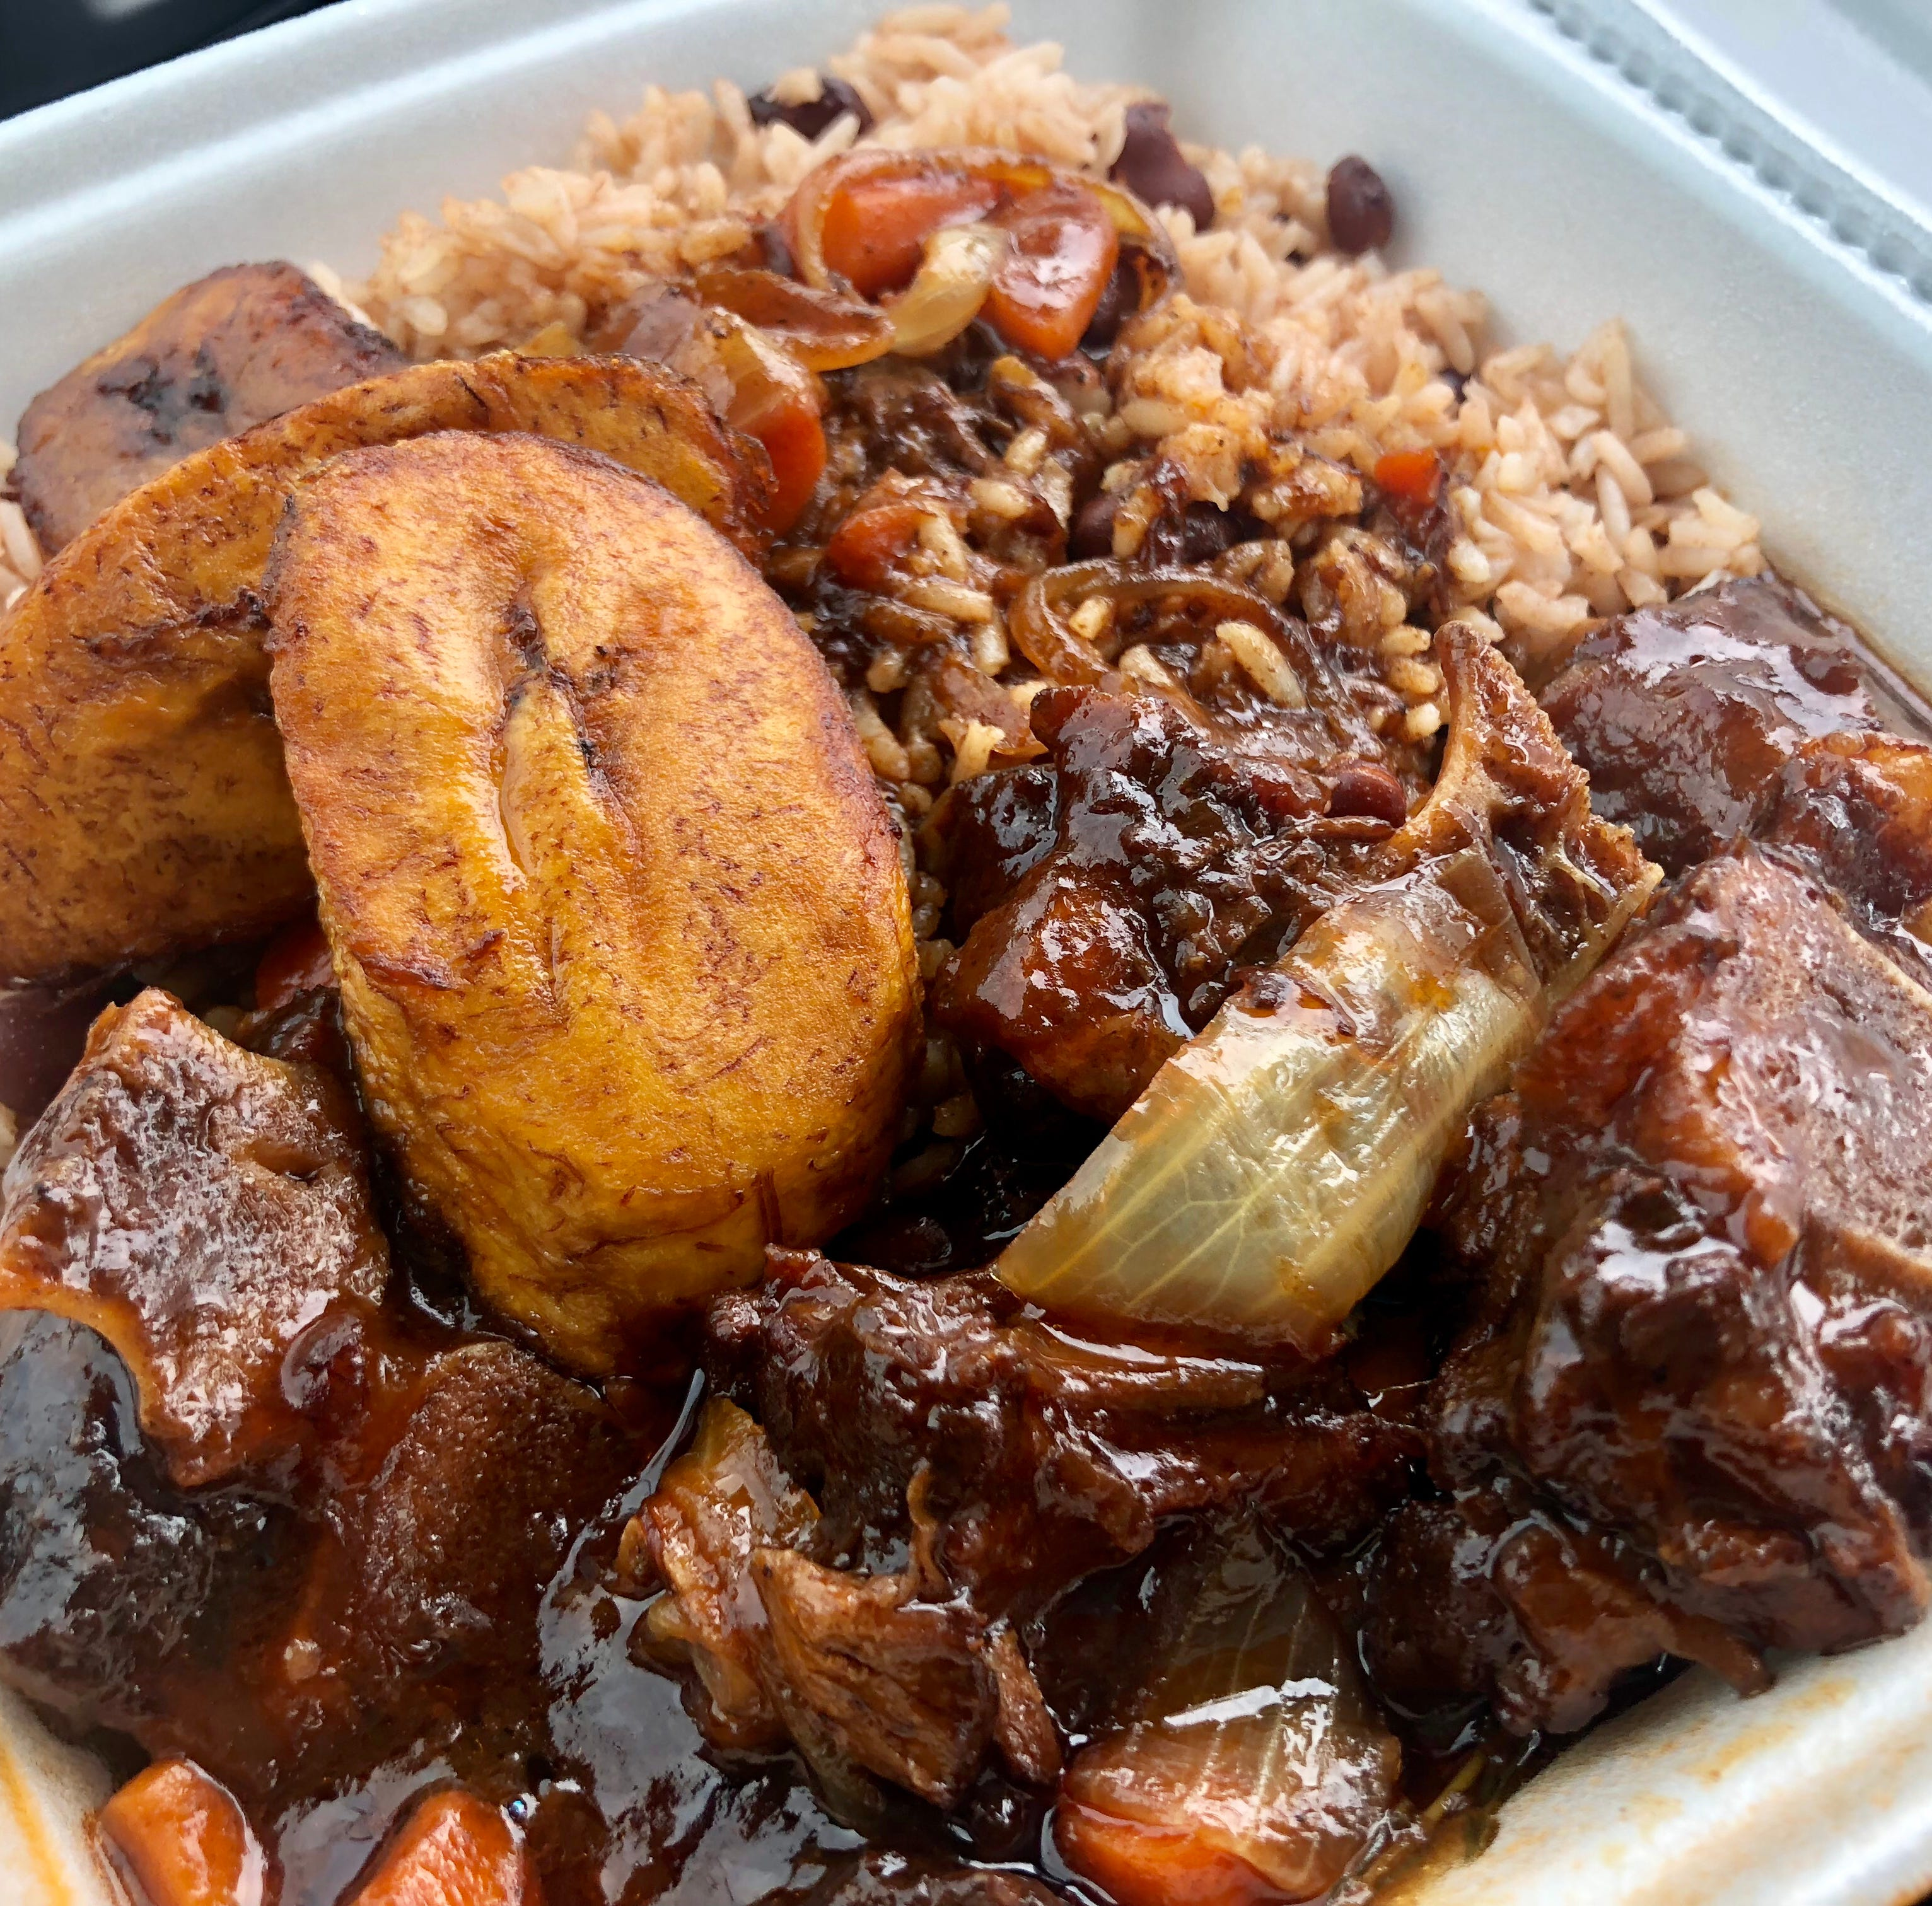 Inside the food court of a Naples mall, Island Vybz Caribbean Cuisine a master in Jamaican flavors — JLB review